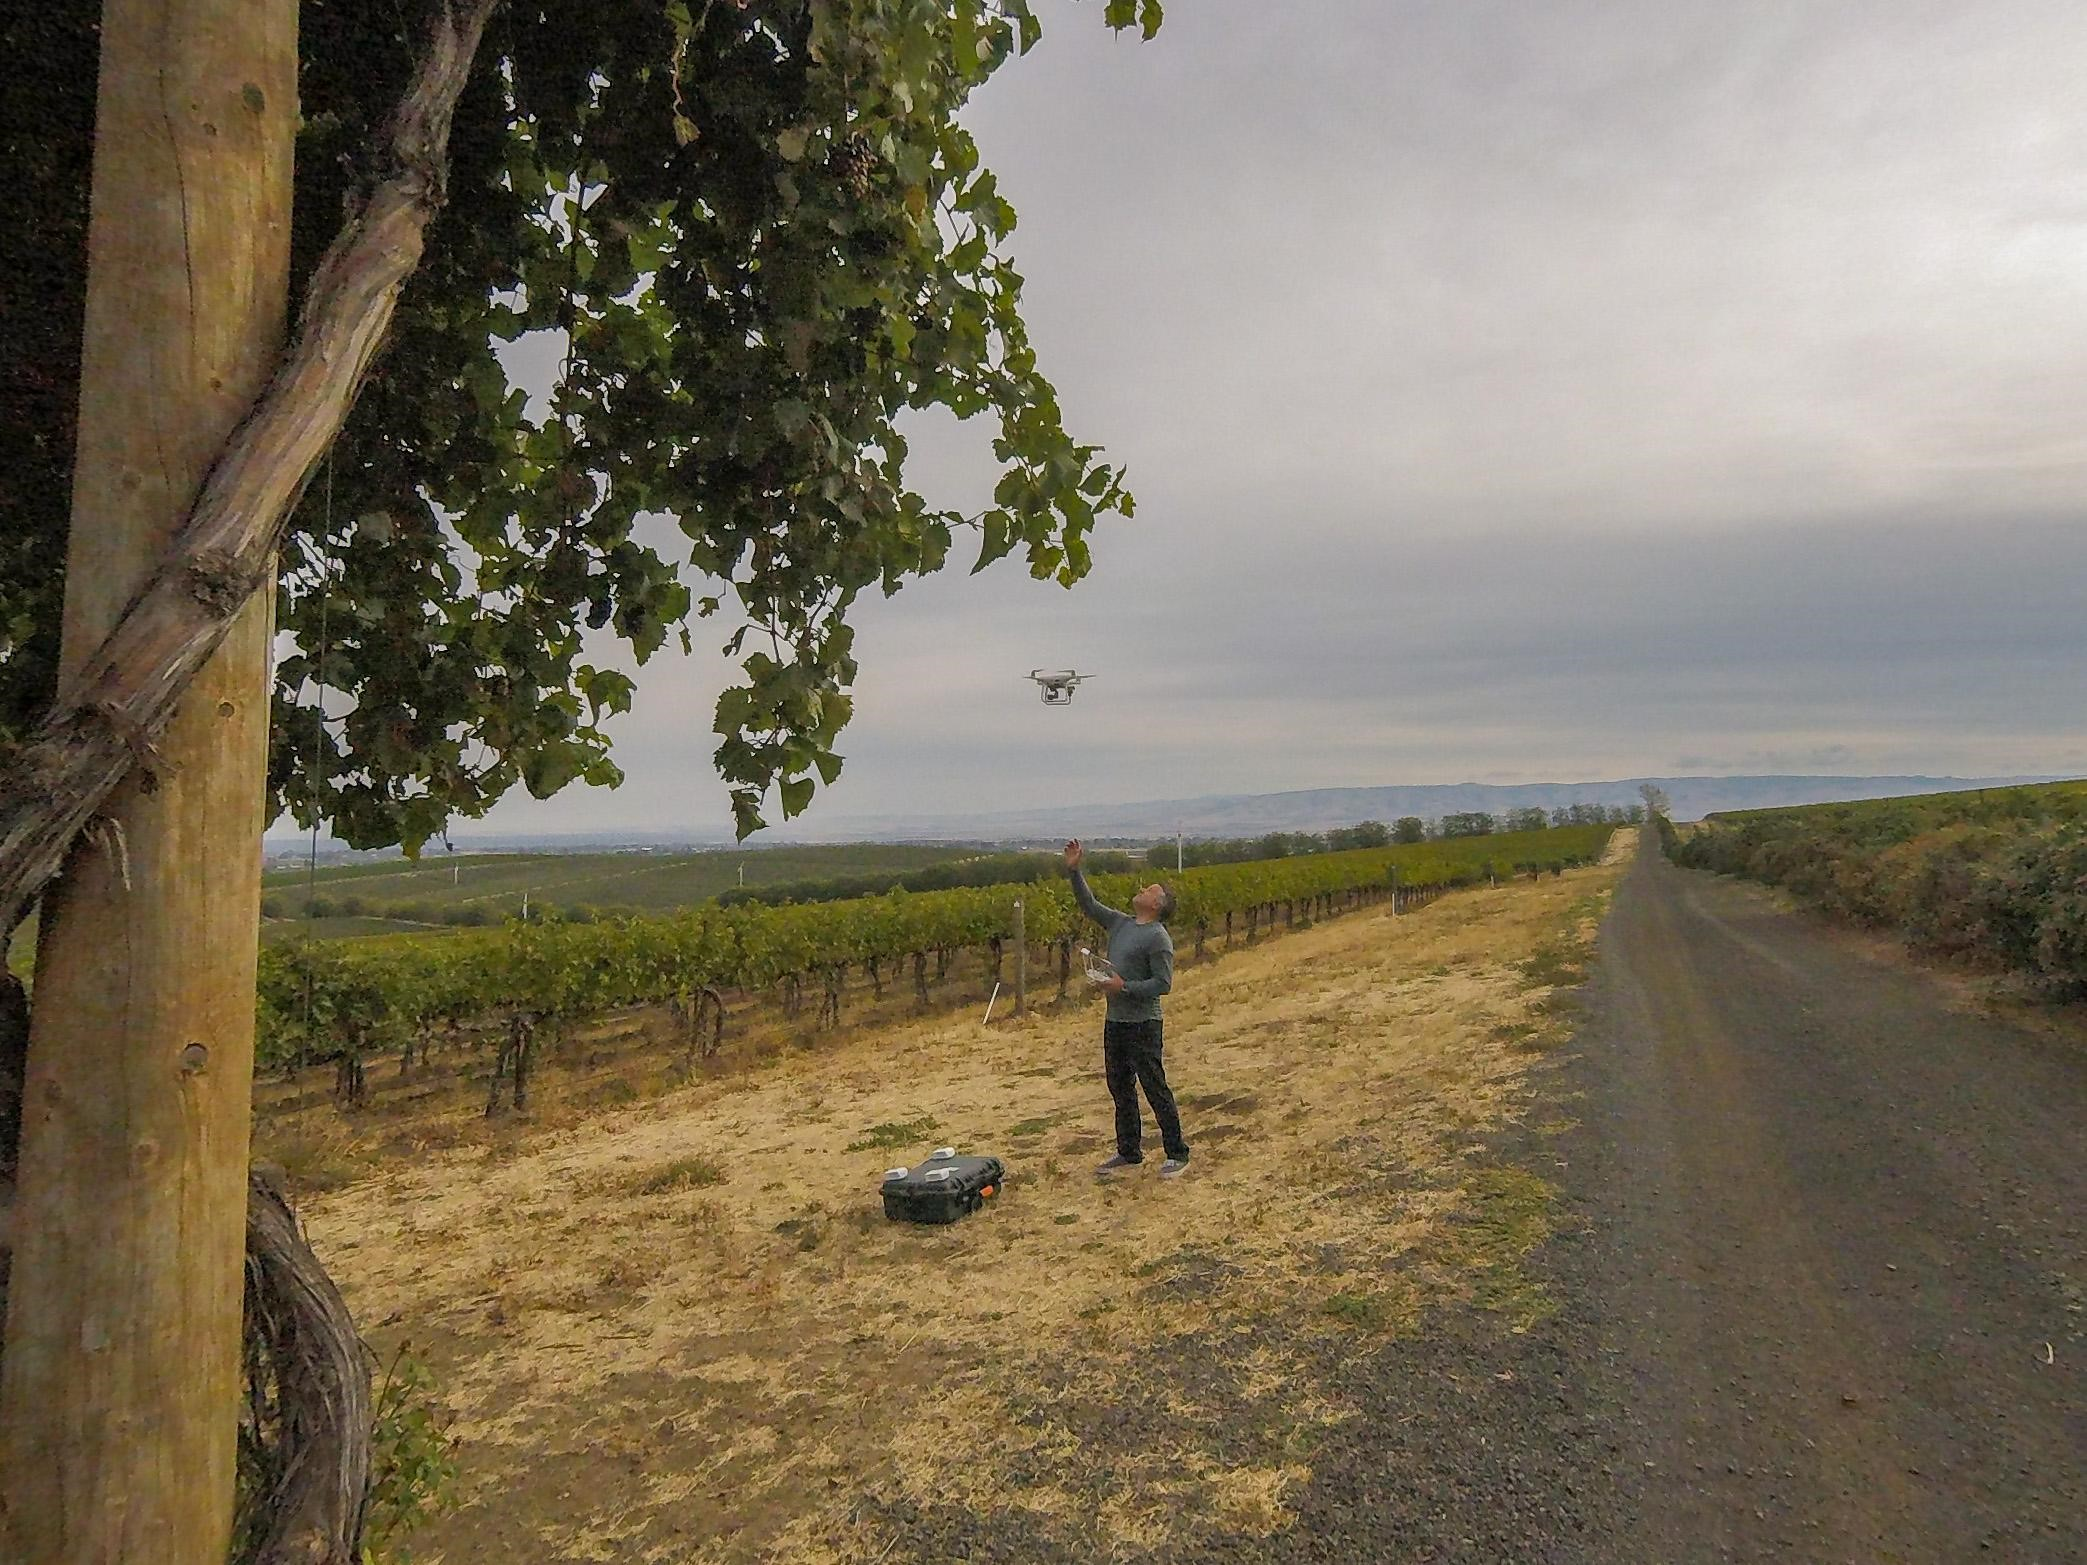 Flying Drones over wine grapes